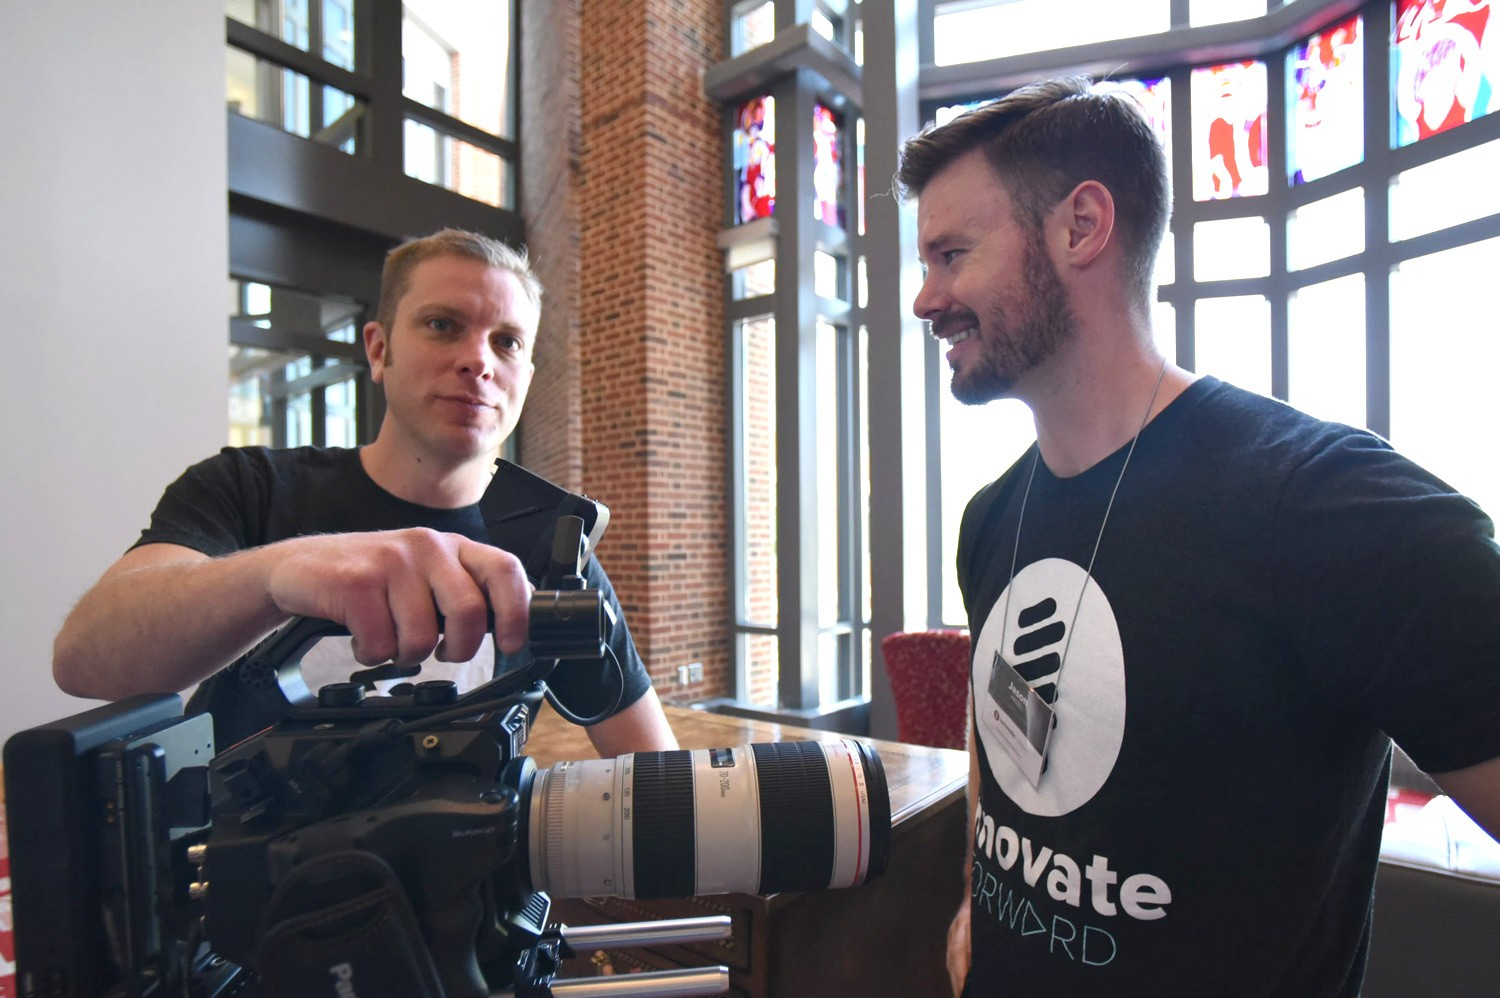 ODEE Media Services team members with camera at Innovate conference